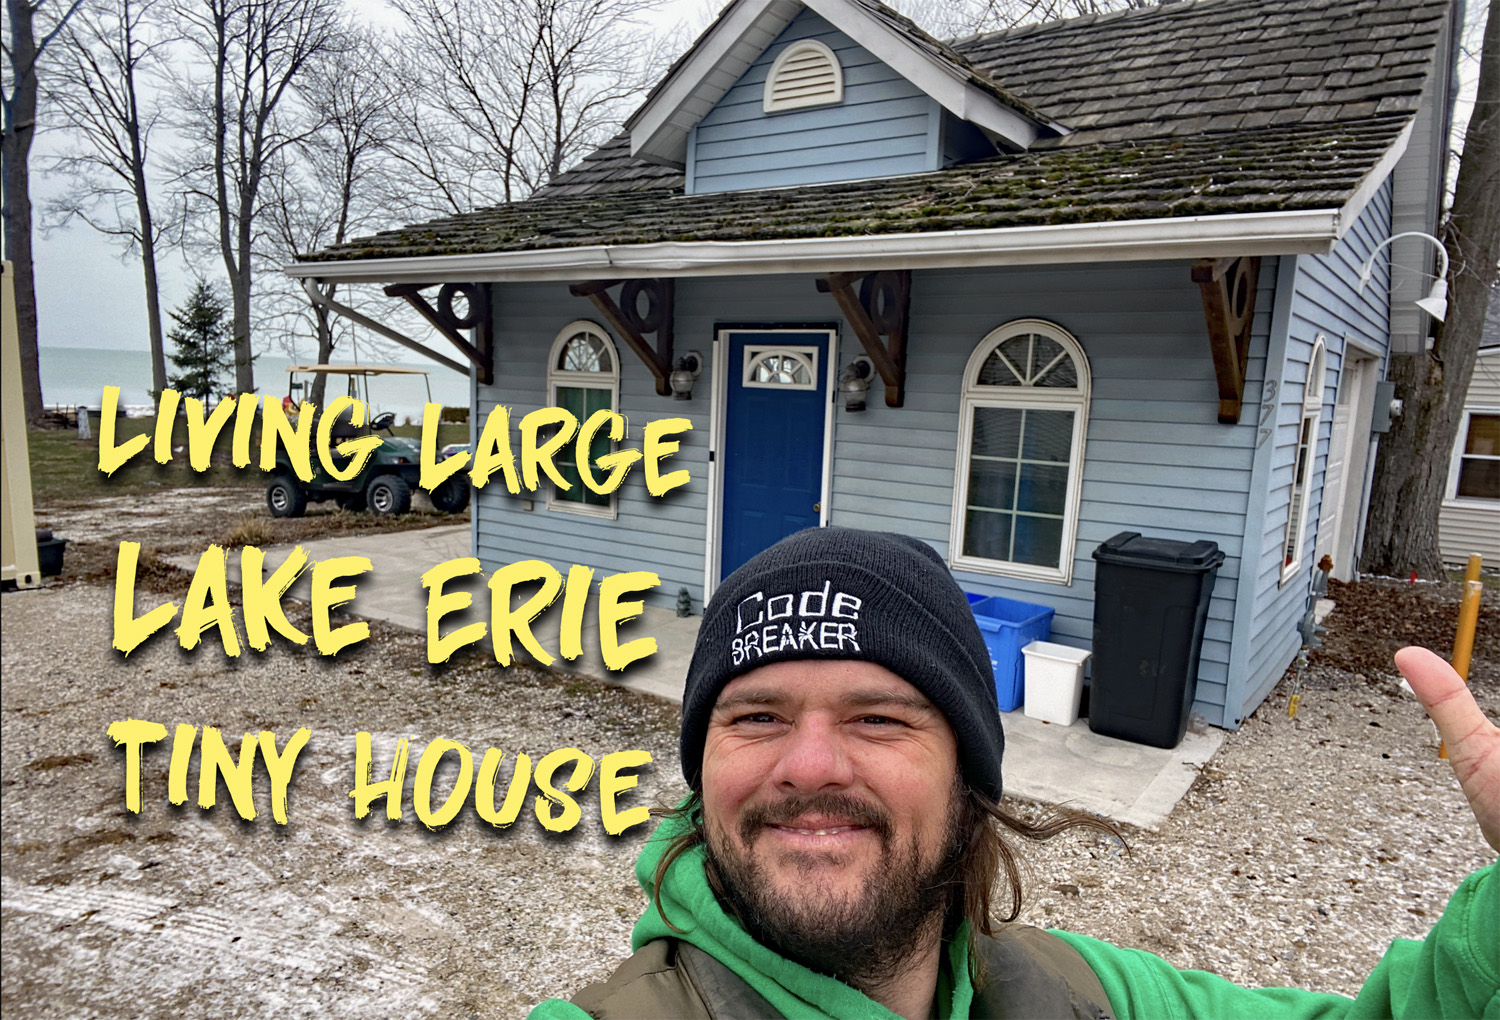 Living Large in a Lake Erie Tiny House